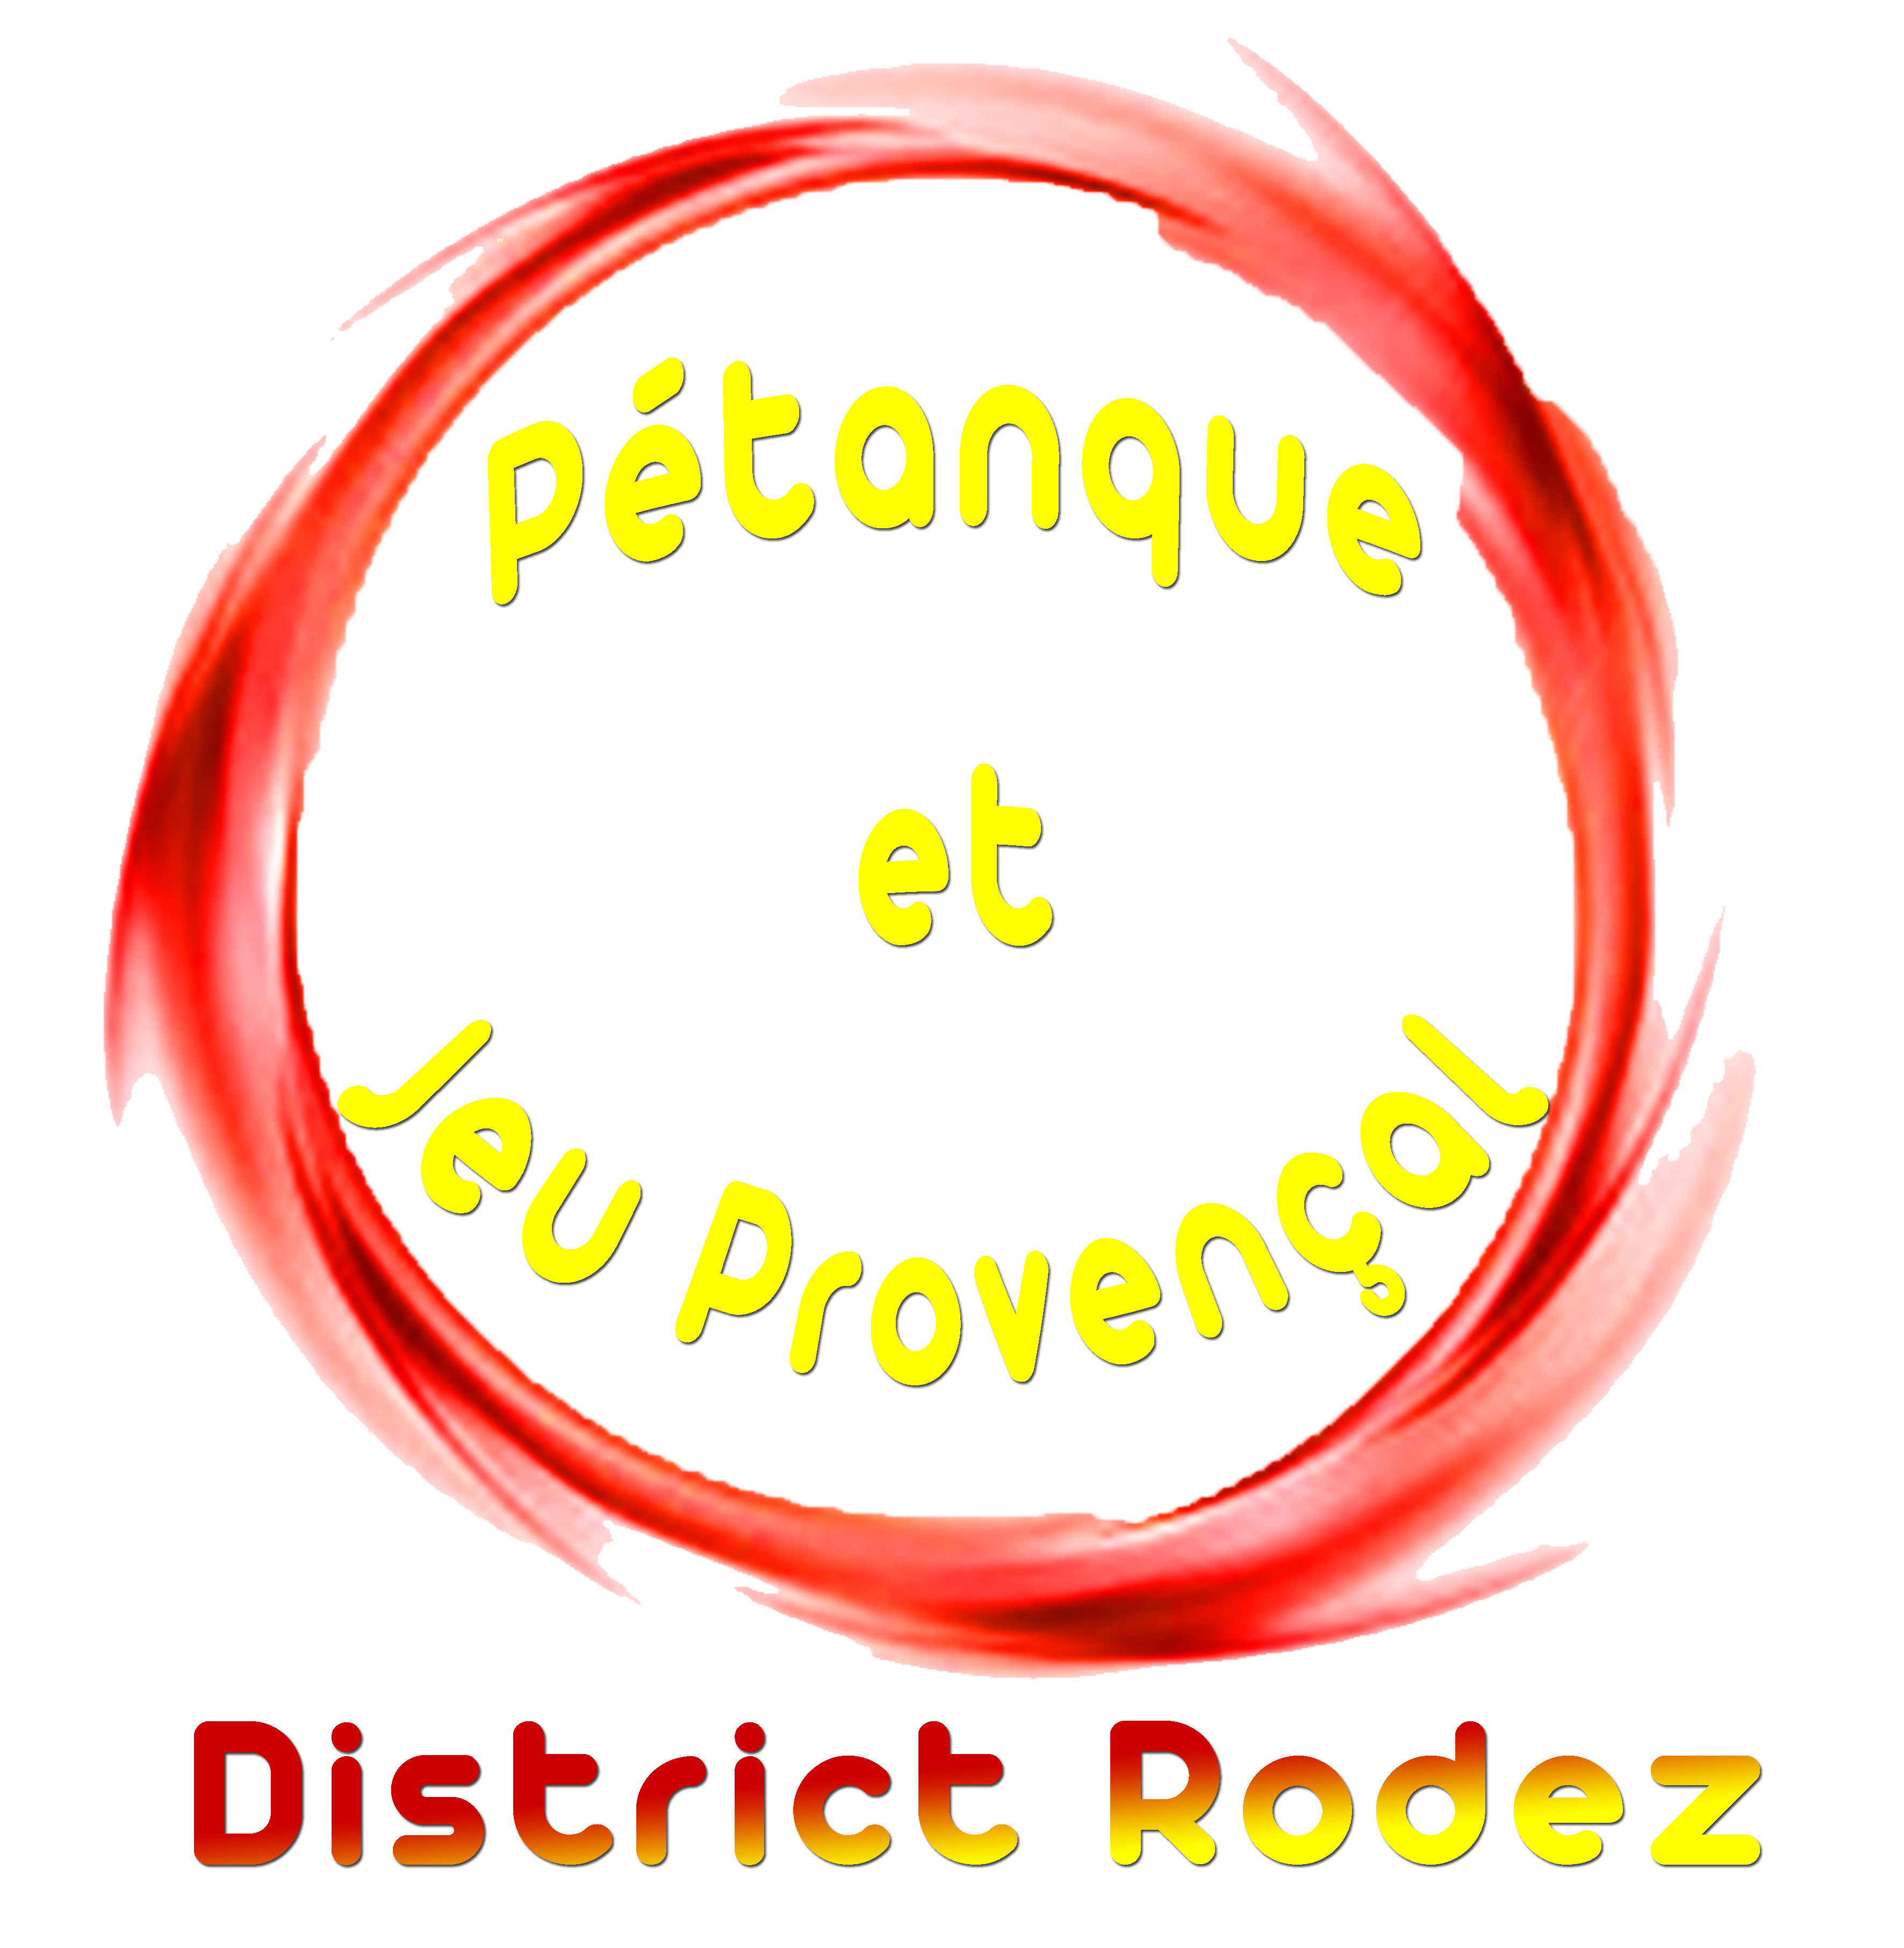 District Rodez